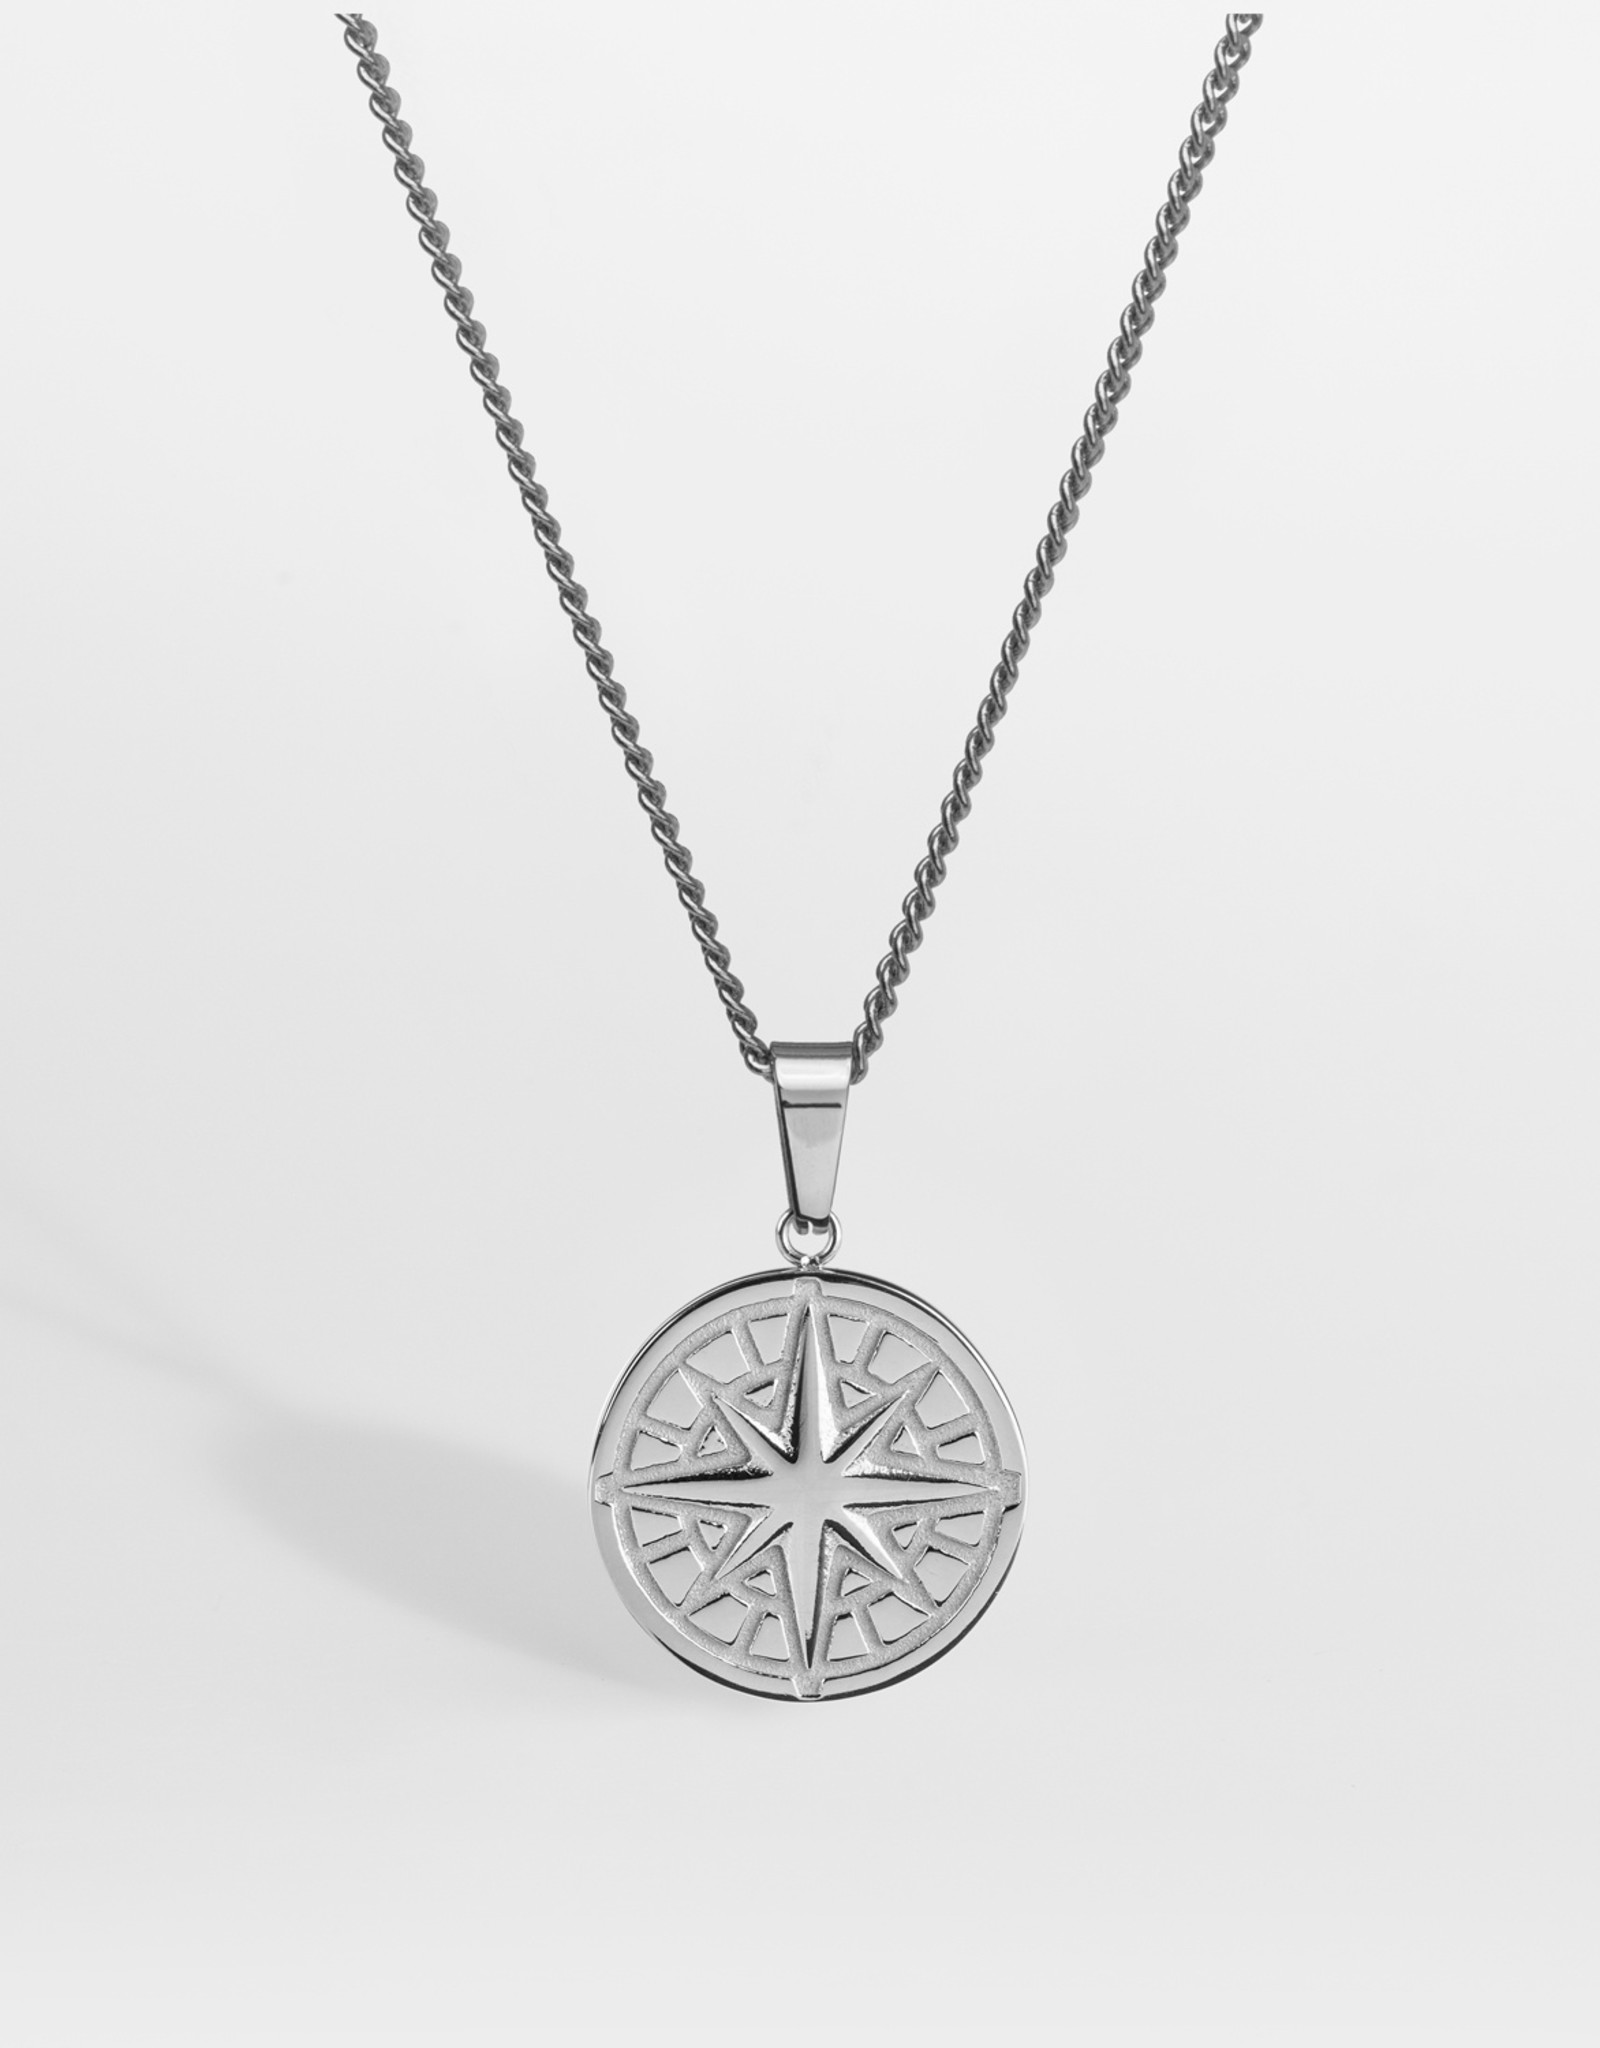 Northern Legacy Nl Compass Pendant 2.0 - Silver